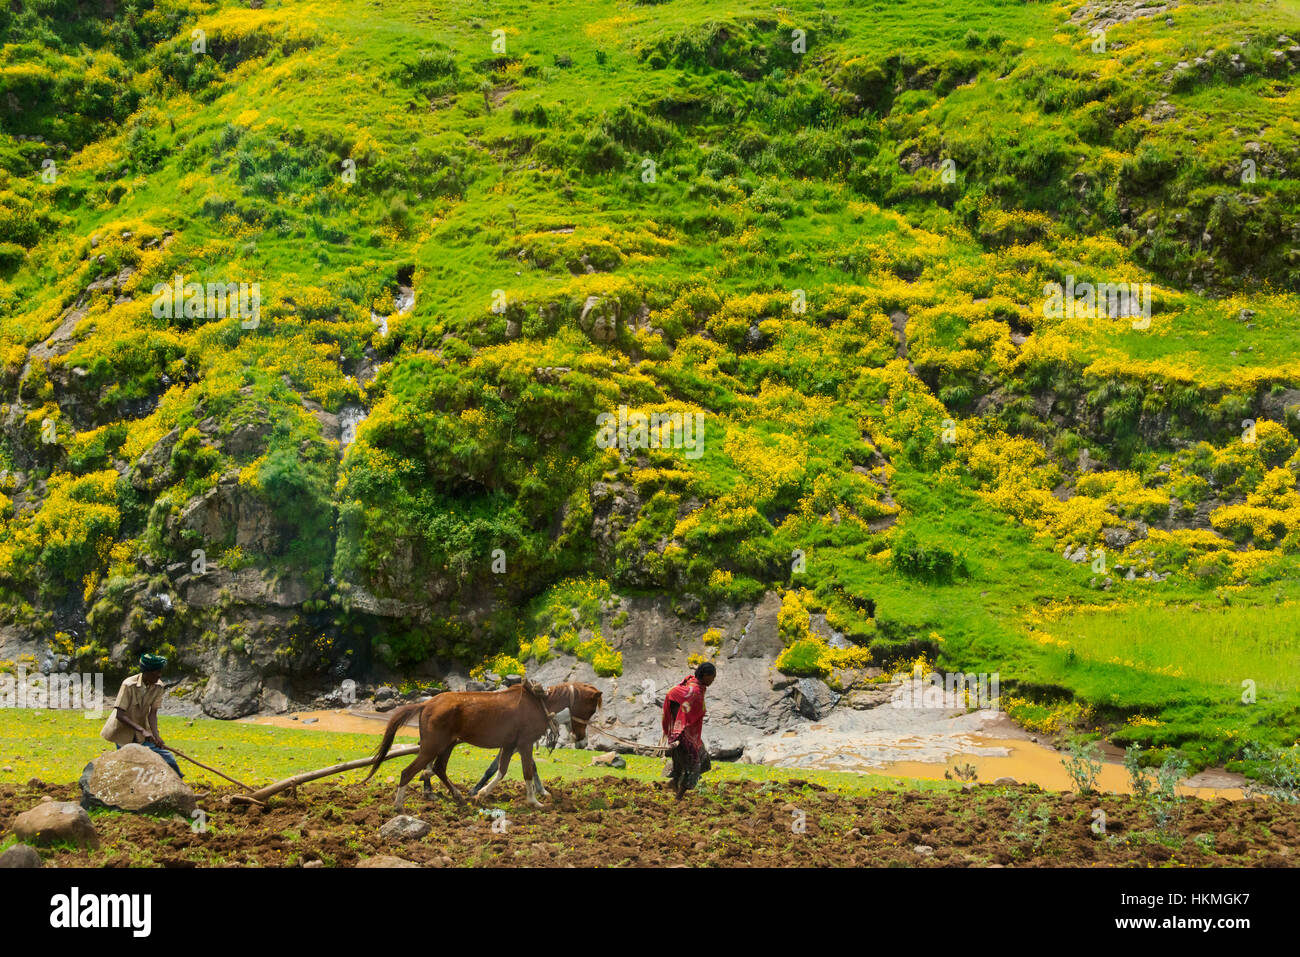 Farmer ploughing with horse in Simien Mountain, Ethiopia - Stock Image